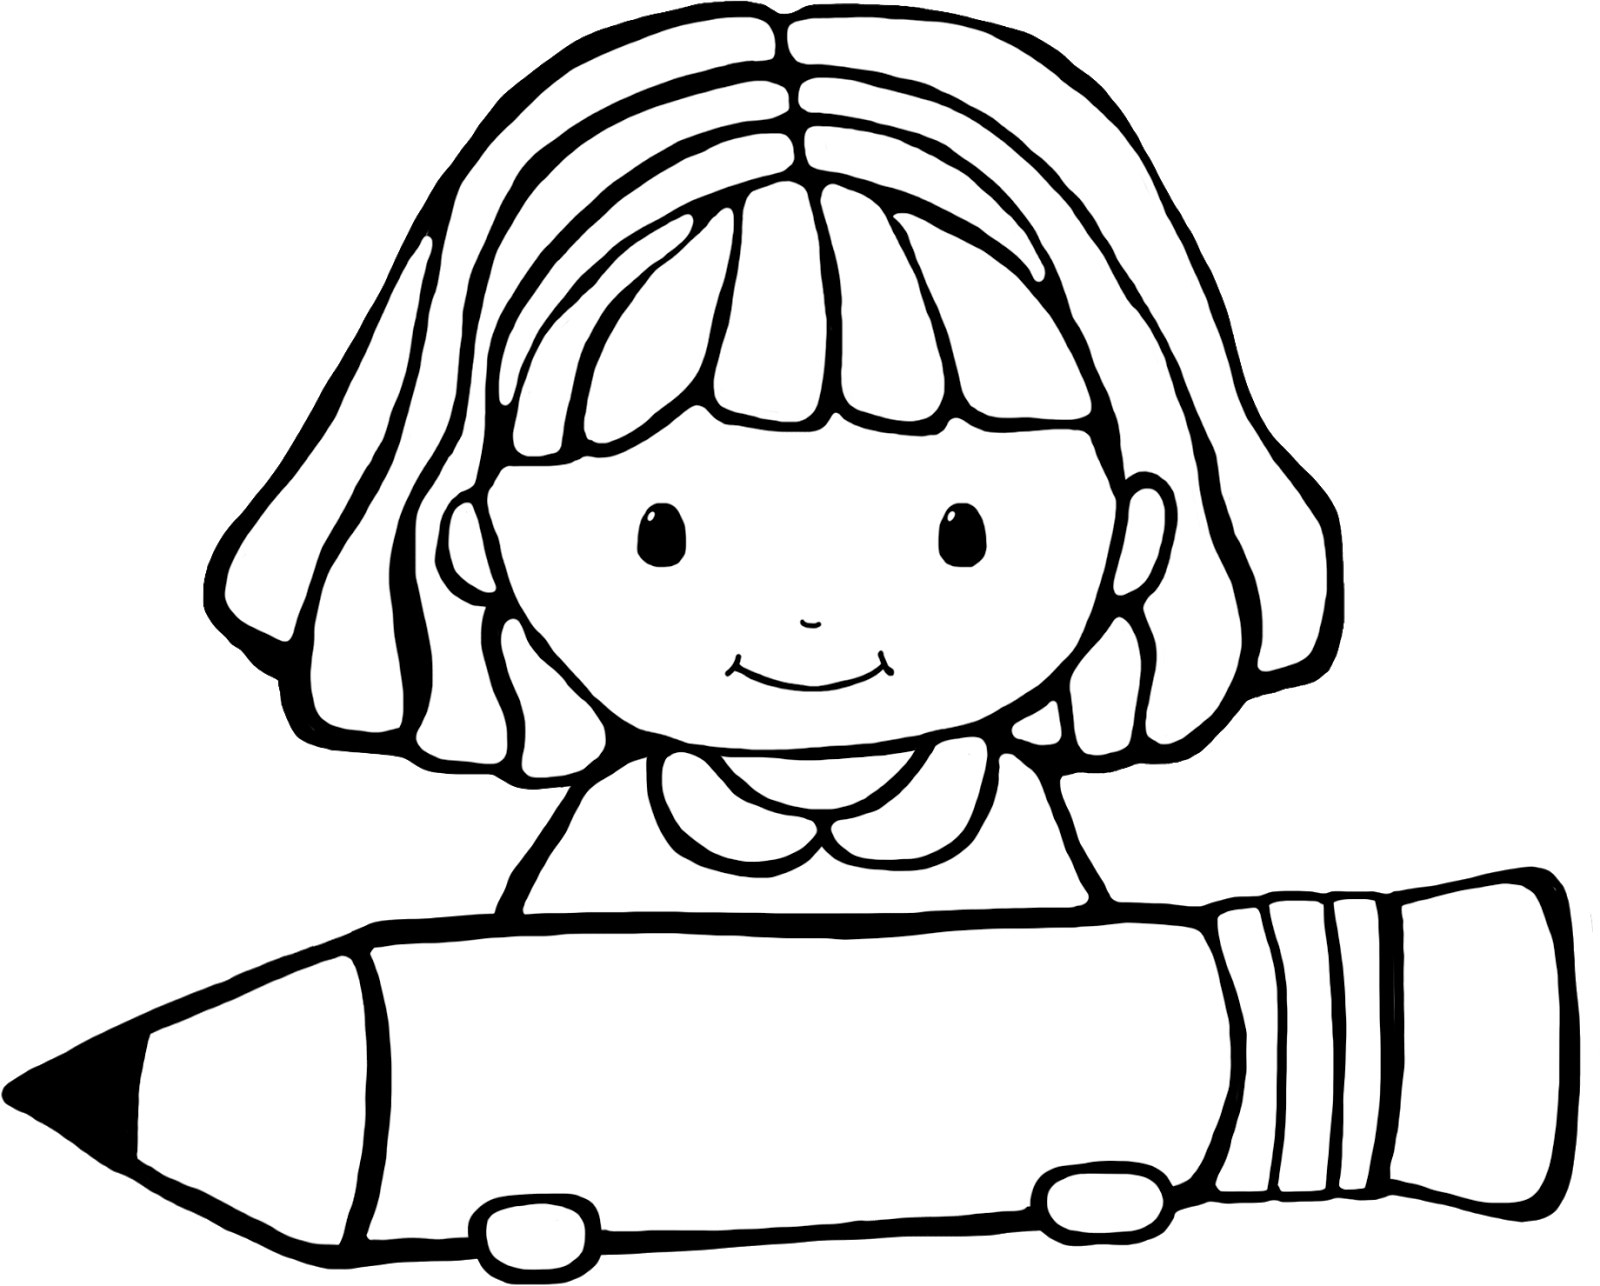 Star student clipart black and white clip art black and white download 28+ Collection of Student Working Clipart Black And White | High ... clip art black and white download